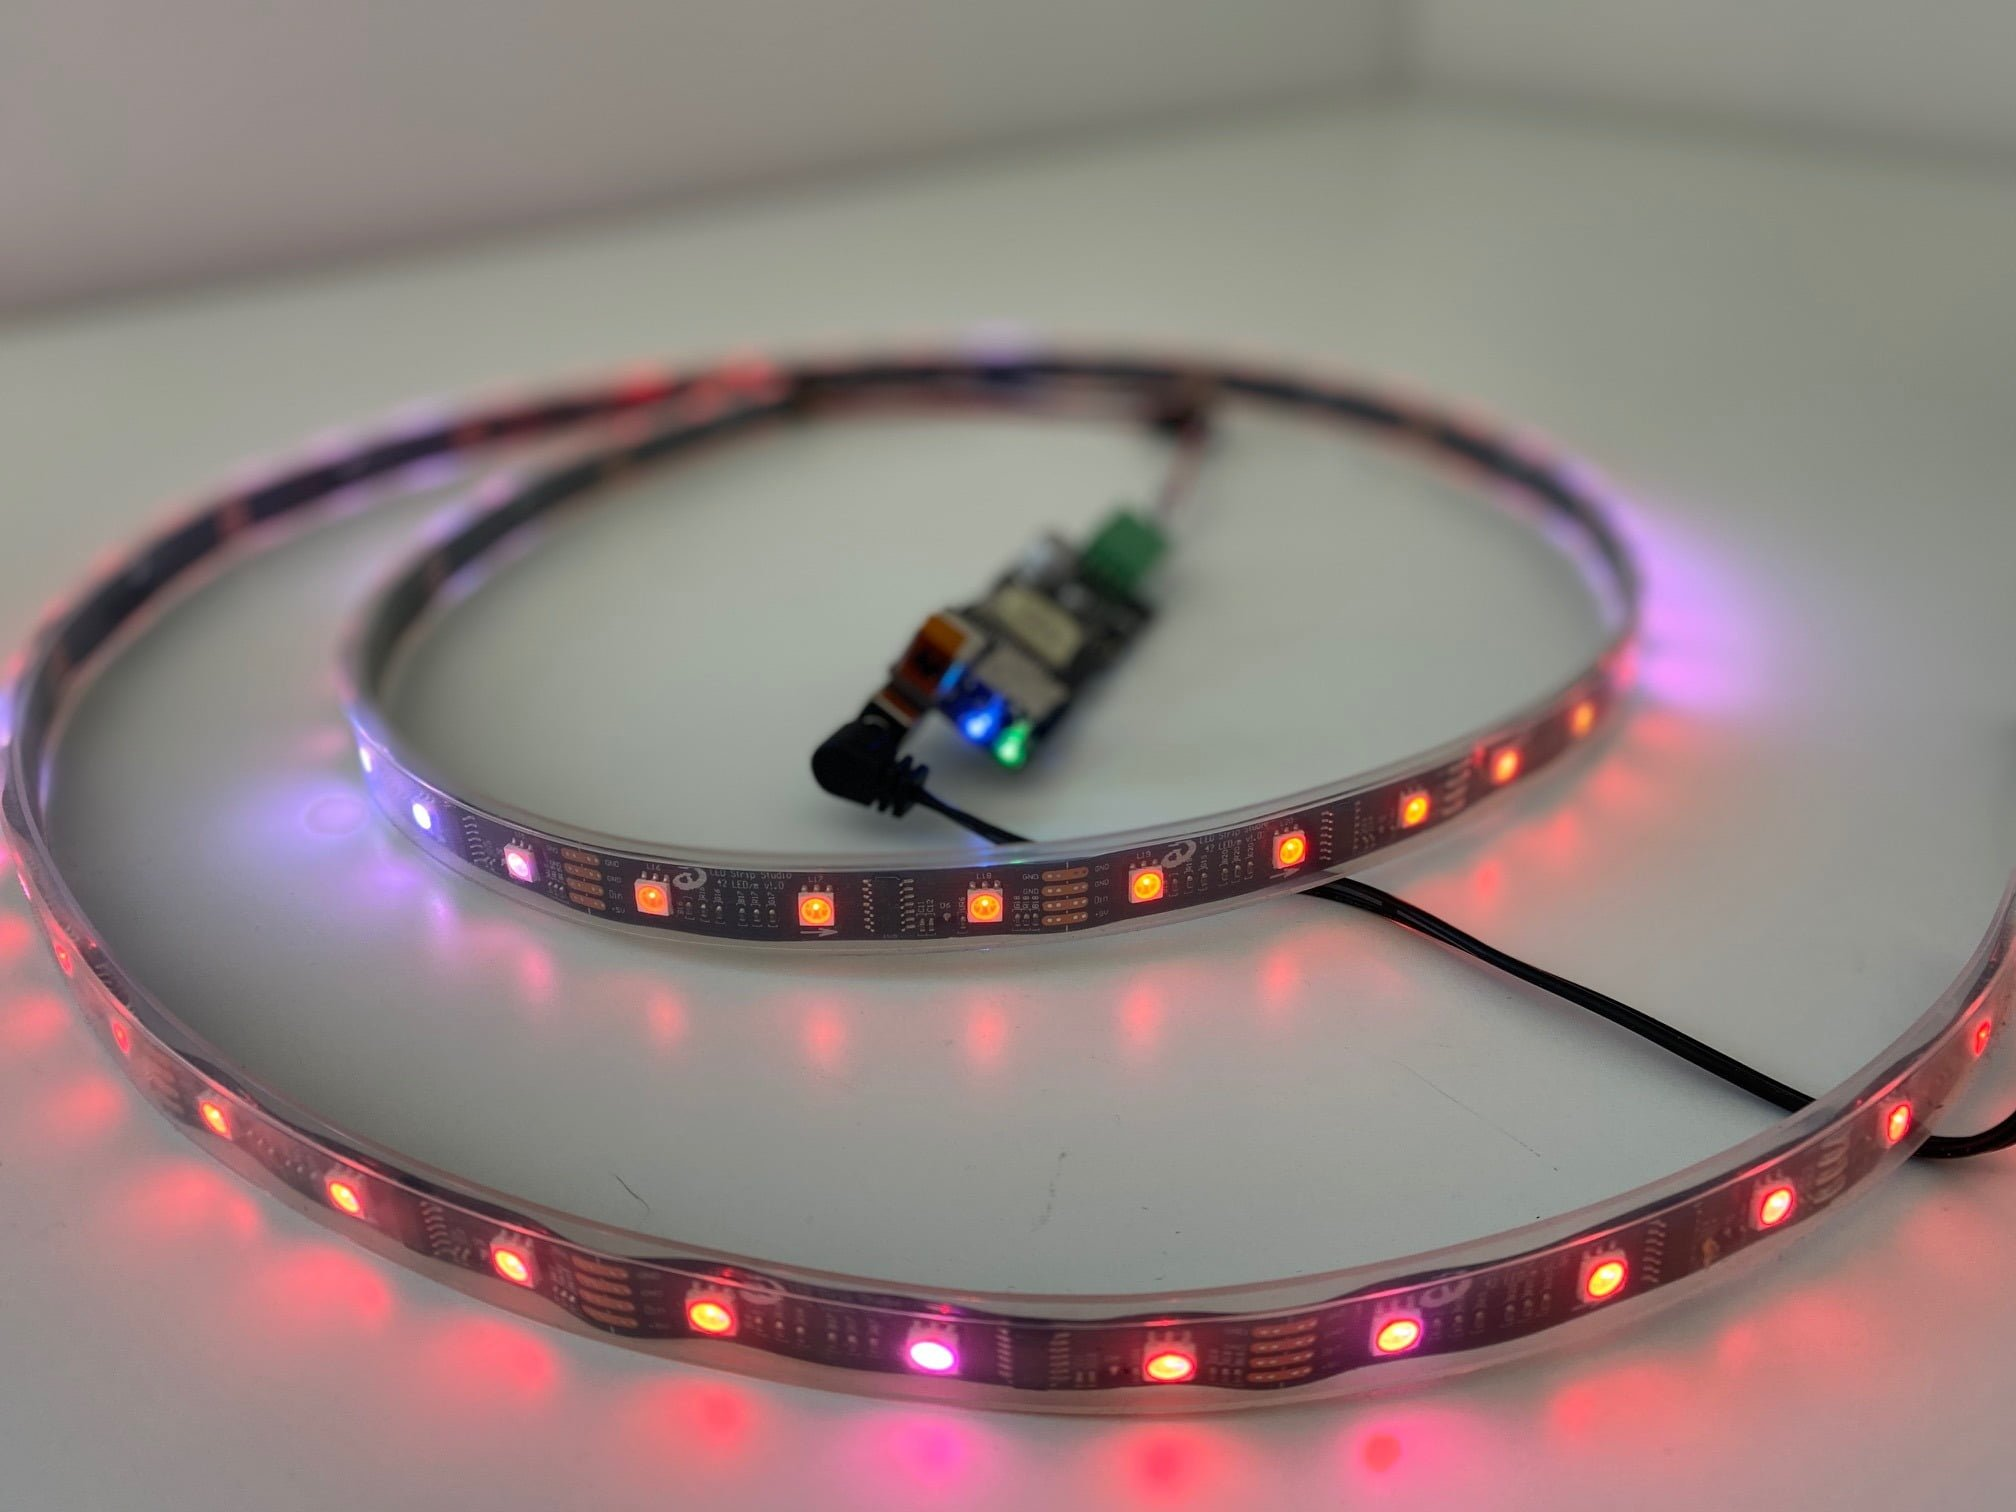 Reactivo hardware with digital LED strip